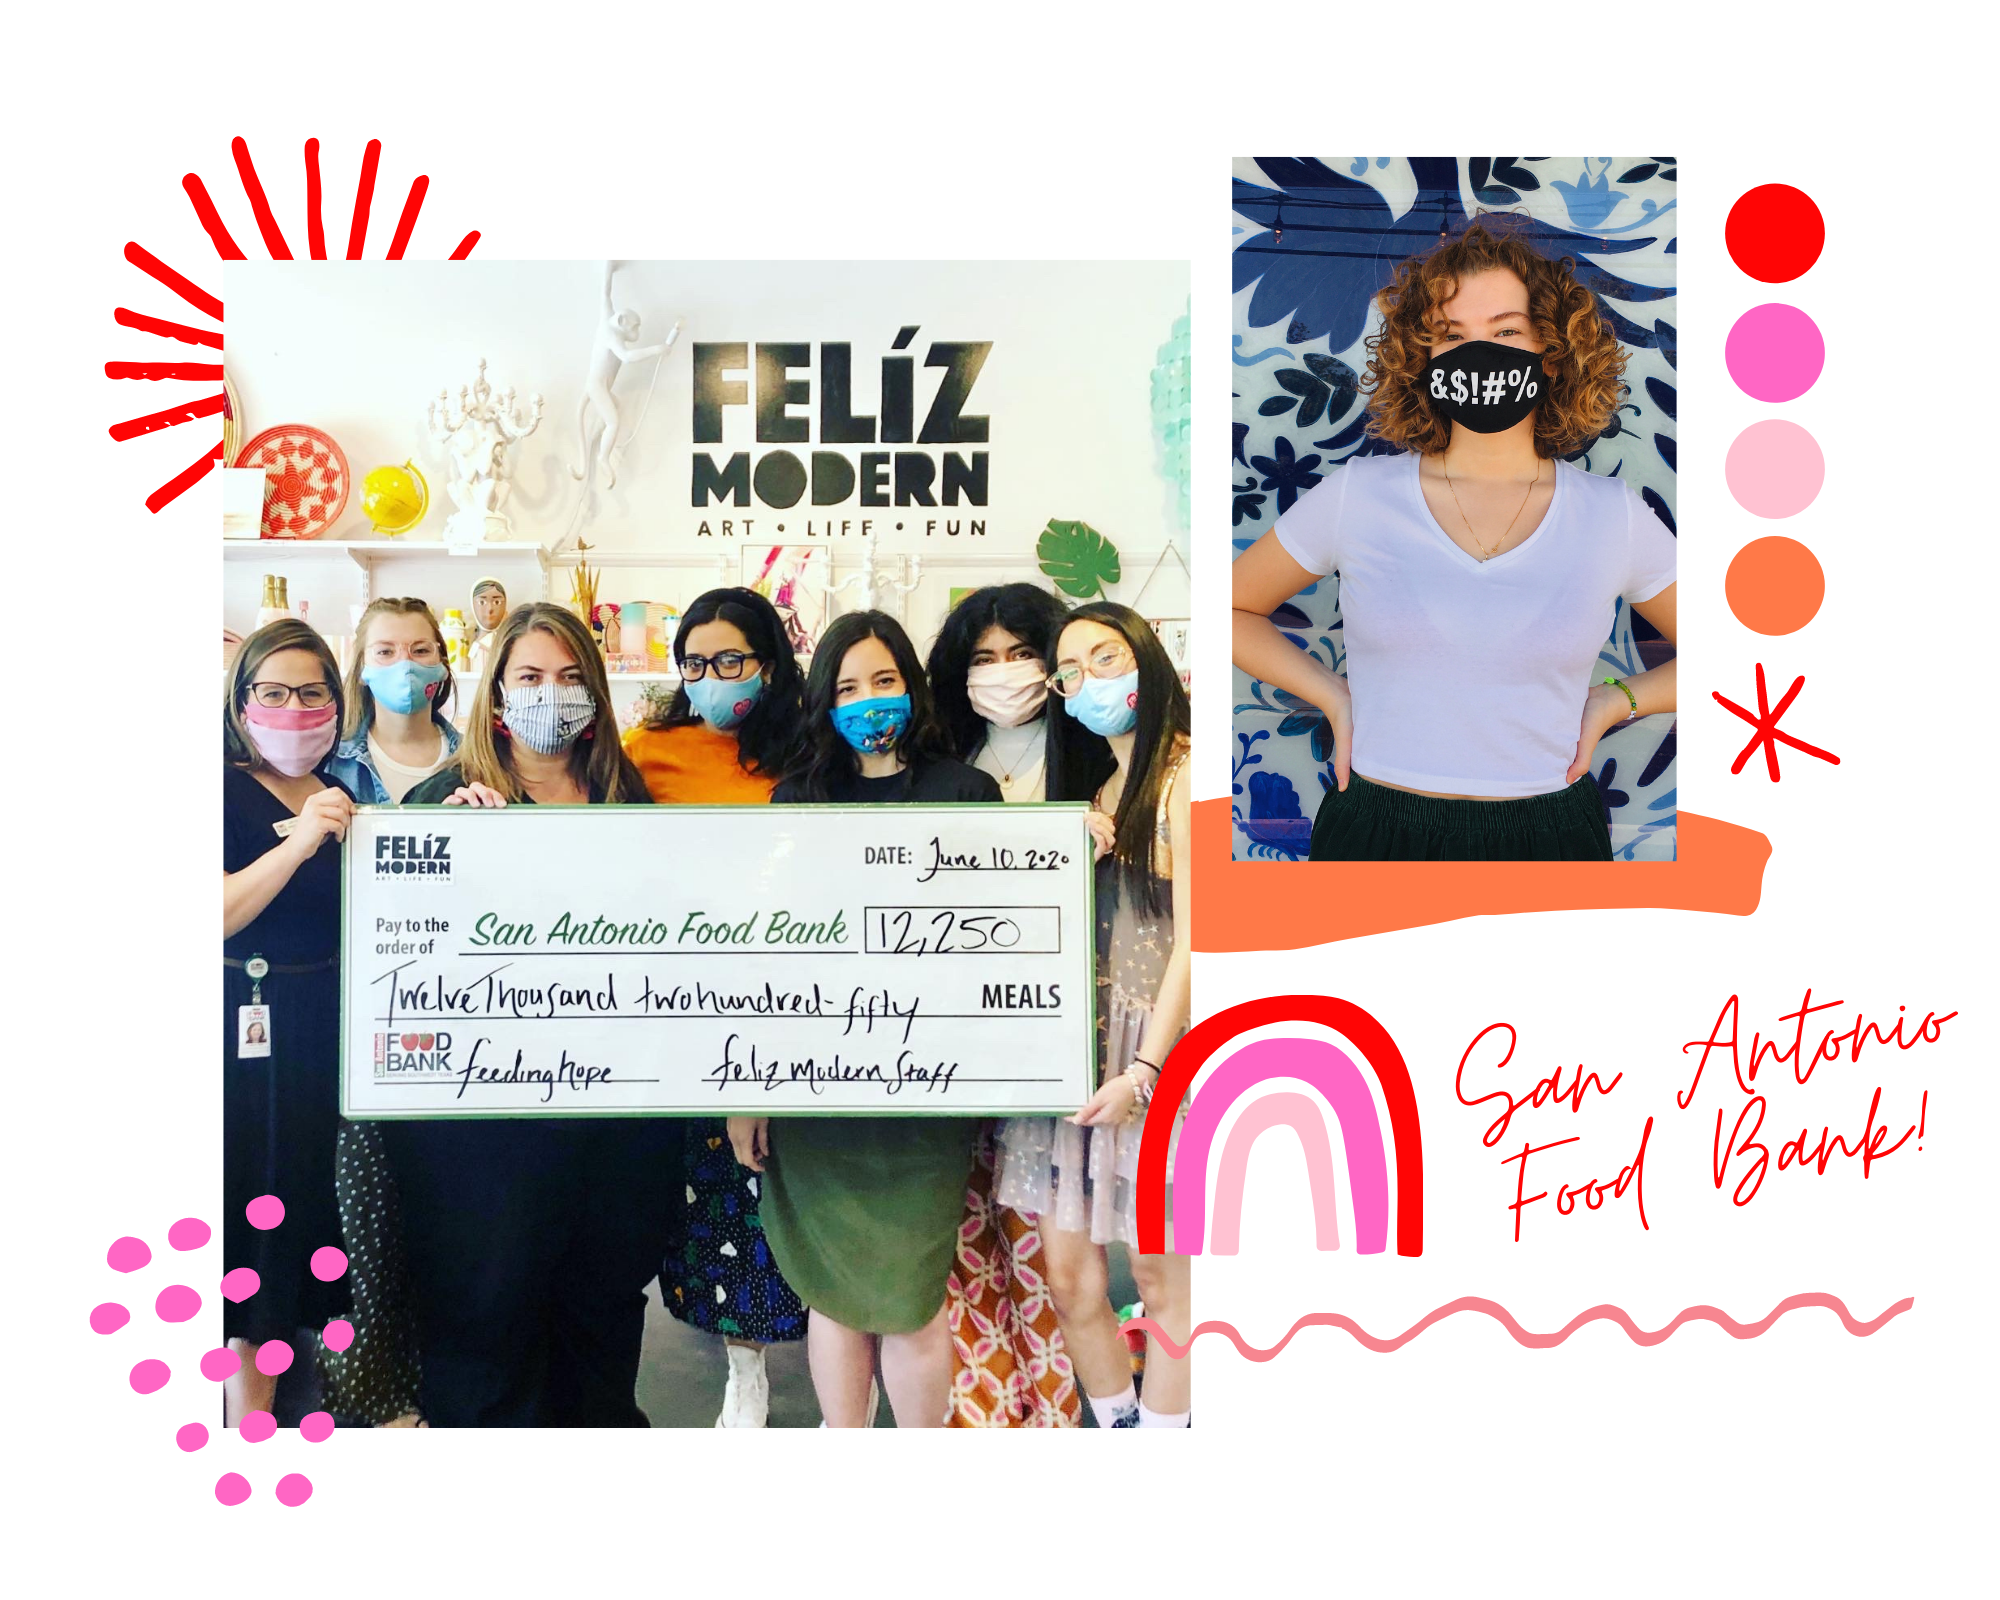 Feliz Modern Community- San Antonio Food Bank